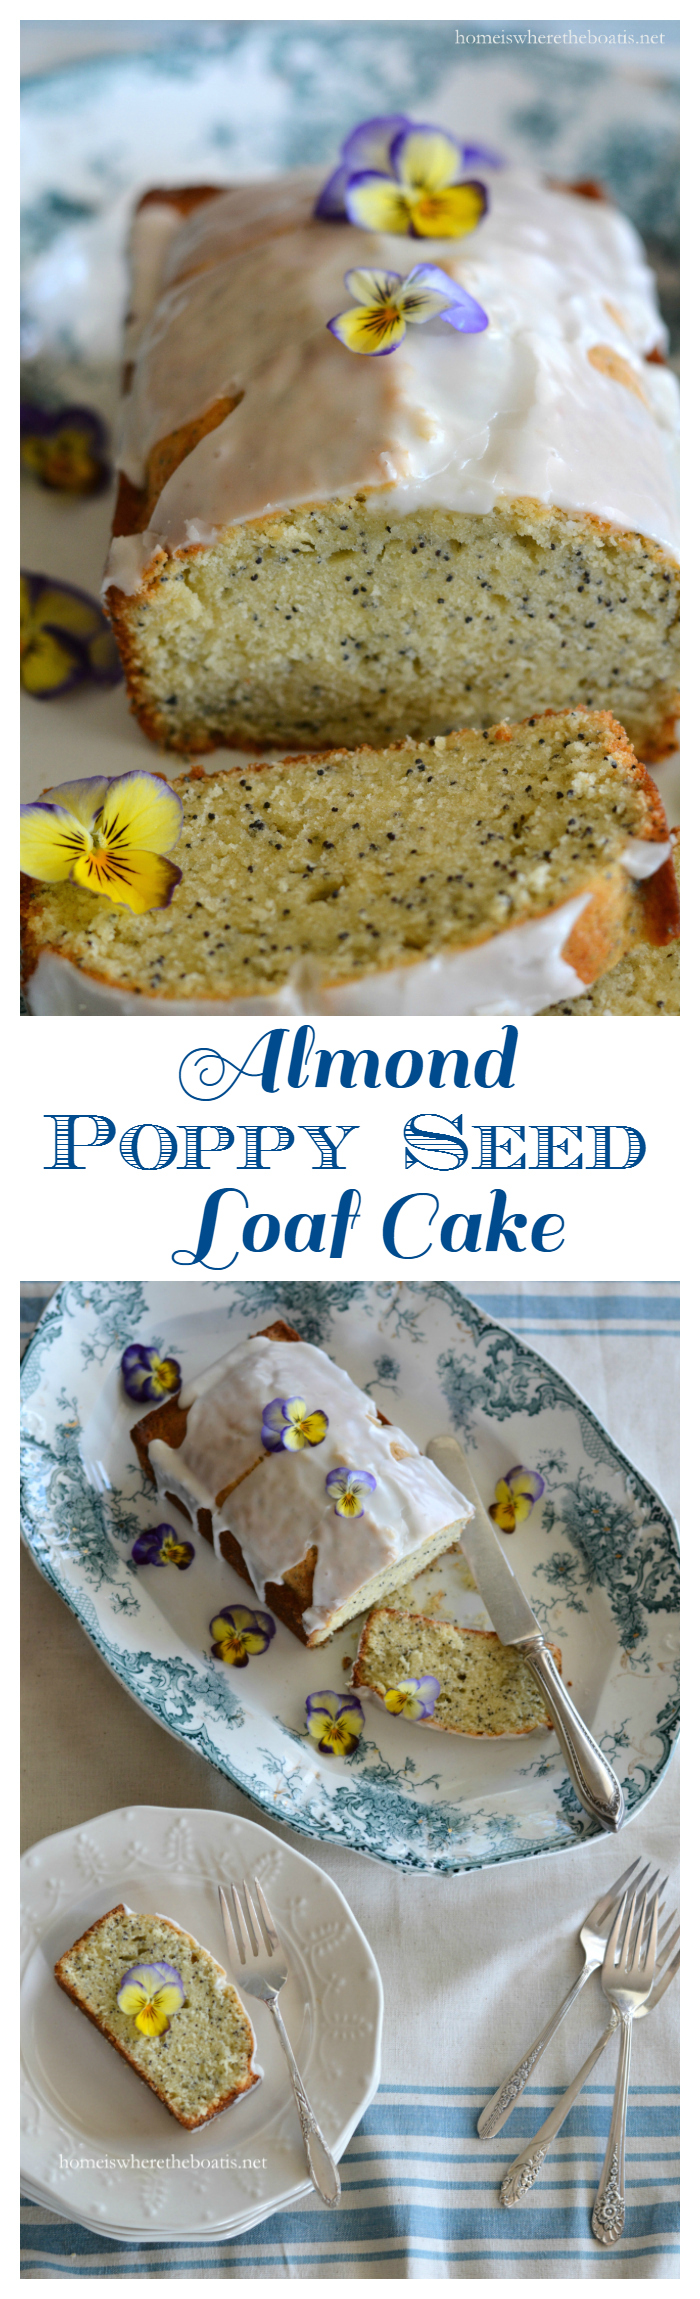 Almond Poppy Seed Loaf Cake